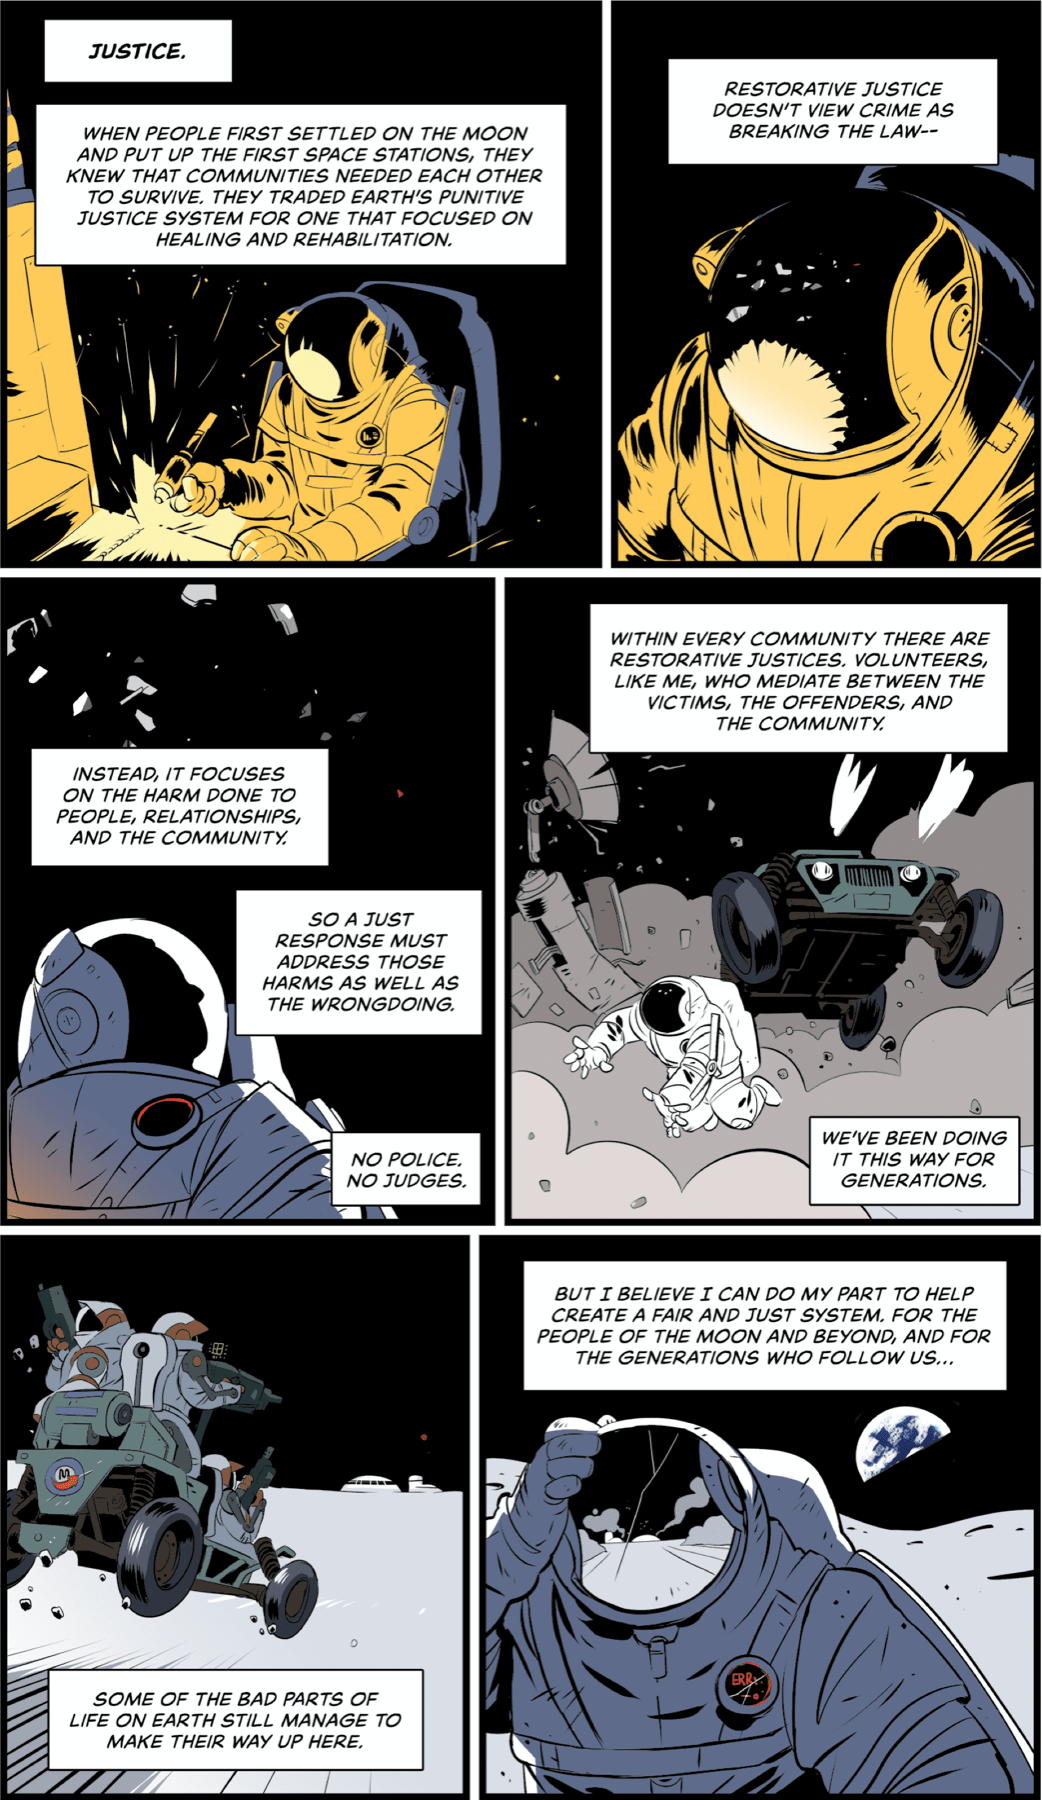 Panel 1: An astronaut with a spacesuit welds something out of frame. Text/narration: Justice. When people first settled on the moon and put up the first space stations, they knew that communities needed each other to survive. They traded earth's punitive justice system for one that focused on healing and rehabilitation. Panel 2: Close-up on welding astronaut. Text/narration: Restorative justice doesn't view crime as breaking the law— Panel 3: The astronaut looks up at stars, space debris floats overhead. Text/narration: Instead, it focuses on the harm done to people, relationships, and the community. So a just response must address those harms as well as the wrongdoing. No police, no judges. Panel 4: The astronaut dives out of the way as a moon buggy that looks like a jeep barrels through the lunar landscape, kicking up dust and smashing a satellite dish. Text/narration: Within every community there are restorative justices. Volunteers, like me, who mediate between the victims, the offenders, and the community. We've been doing it this way for generations. Panel 5: The moon buggy continues to barrel through the landscape. The astronauts on the buggy have guns. Text/narration: Some of the bad parts of life on earth still manage to make their way up here. Panel 6: The original astronaut gets up, their helmet glass cracked. Text/narration: But I believe I can do my part to help create a fair and just system. For the people of the moon and beyond, and for the generations who follow us…